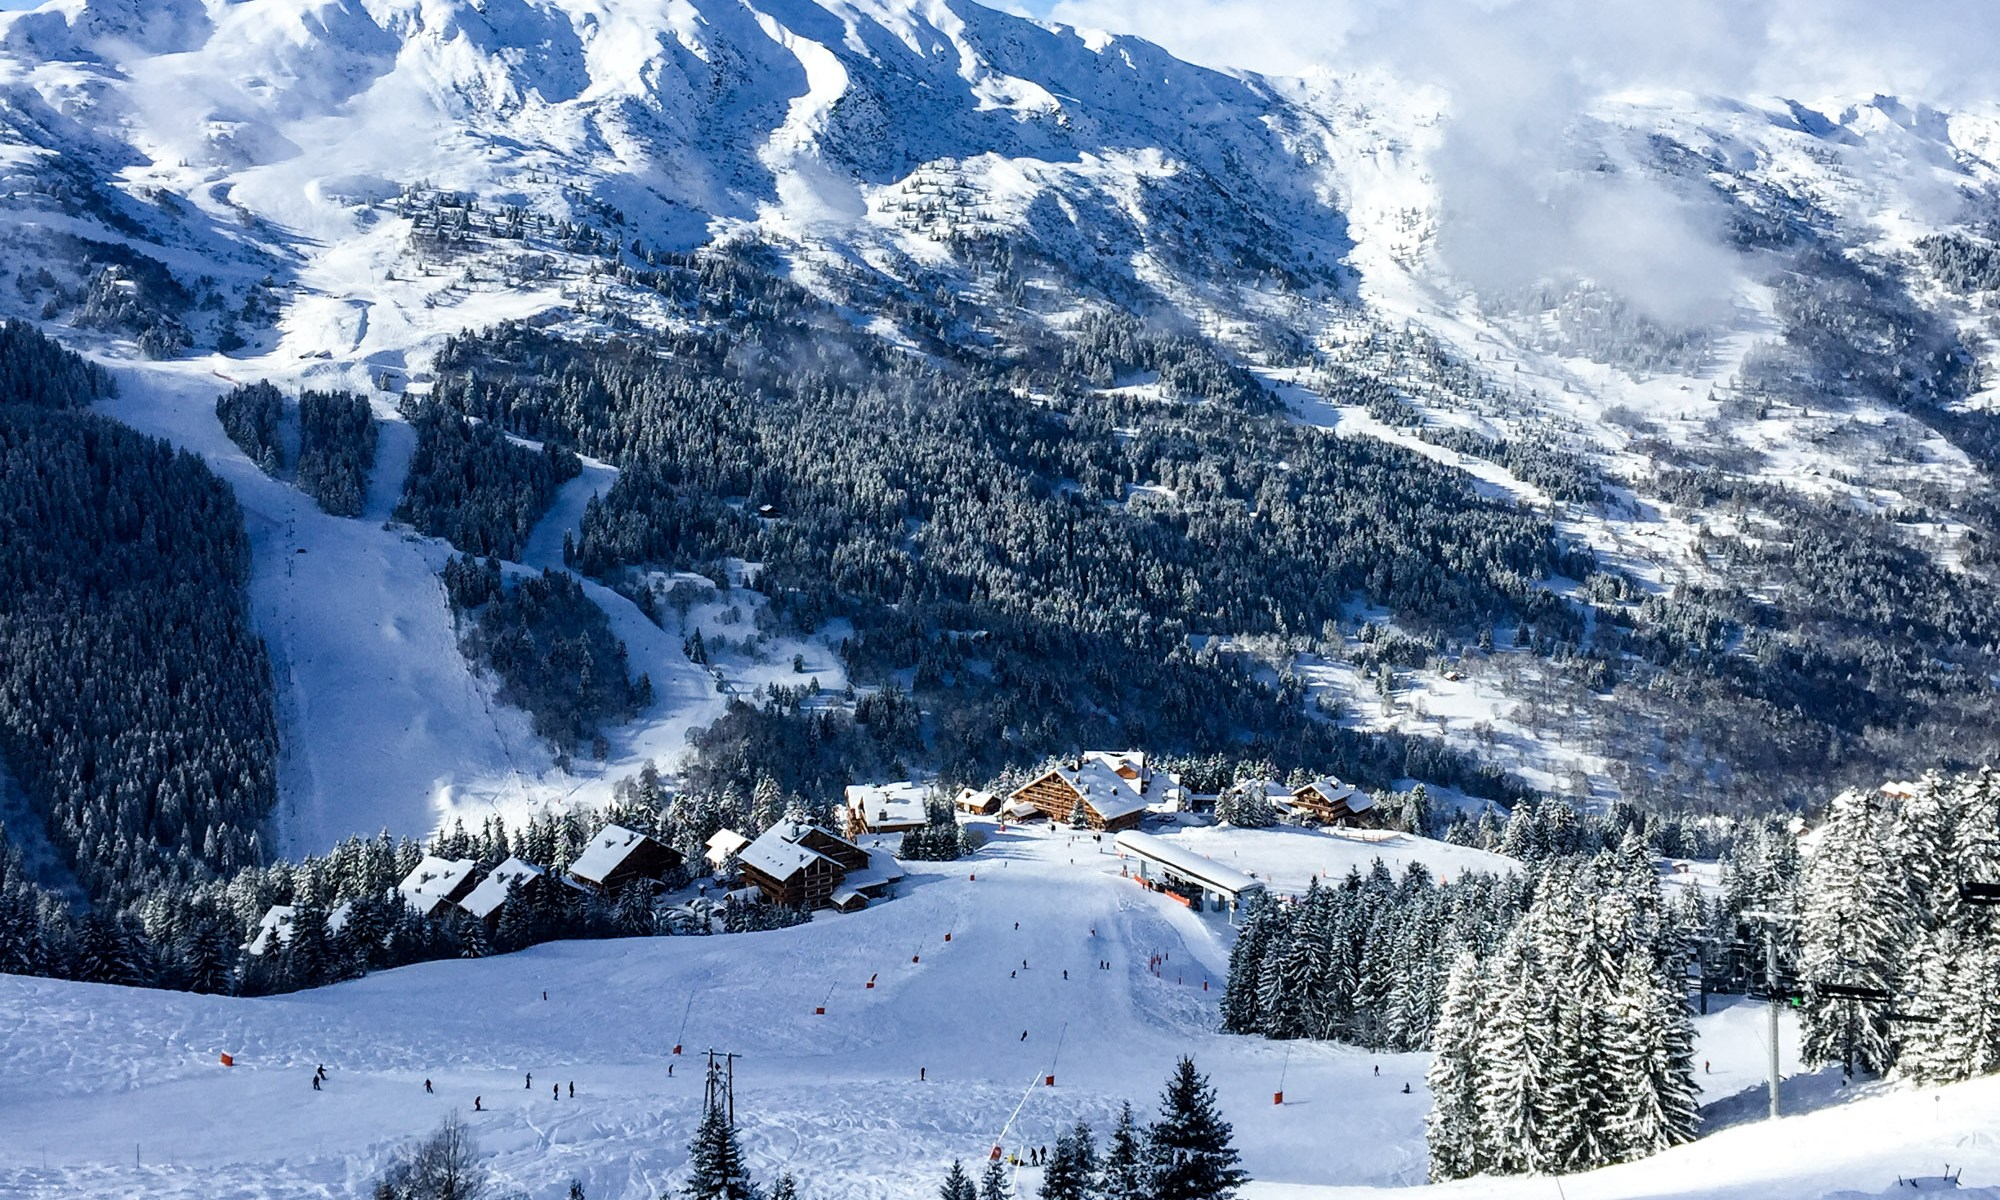 Meribel is the centre of the Les Trois Vallées, a multi-linked ski area with 600 km of pistes. Photo Meribel.